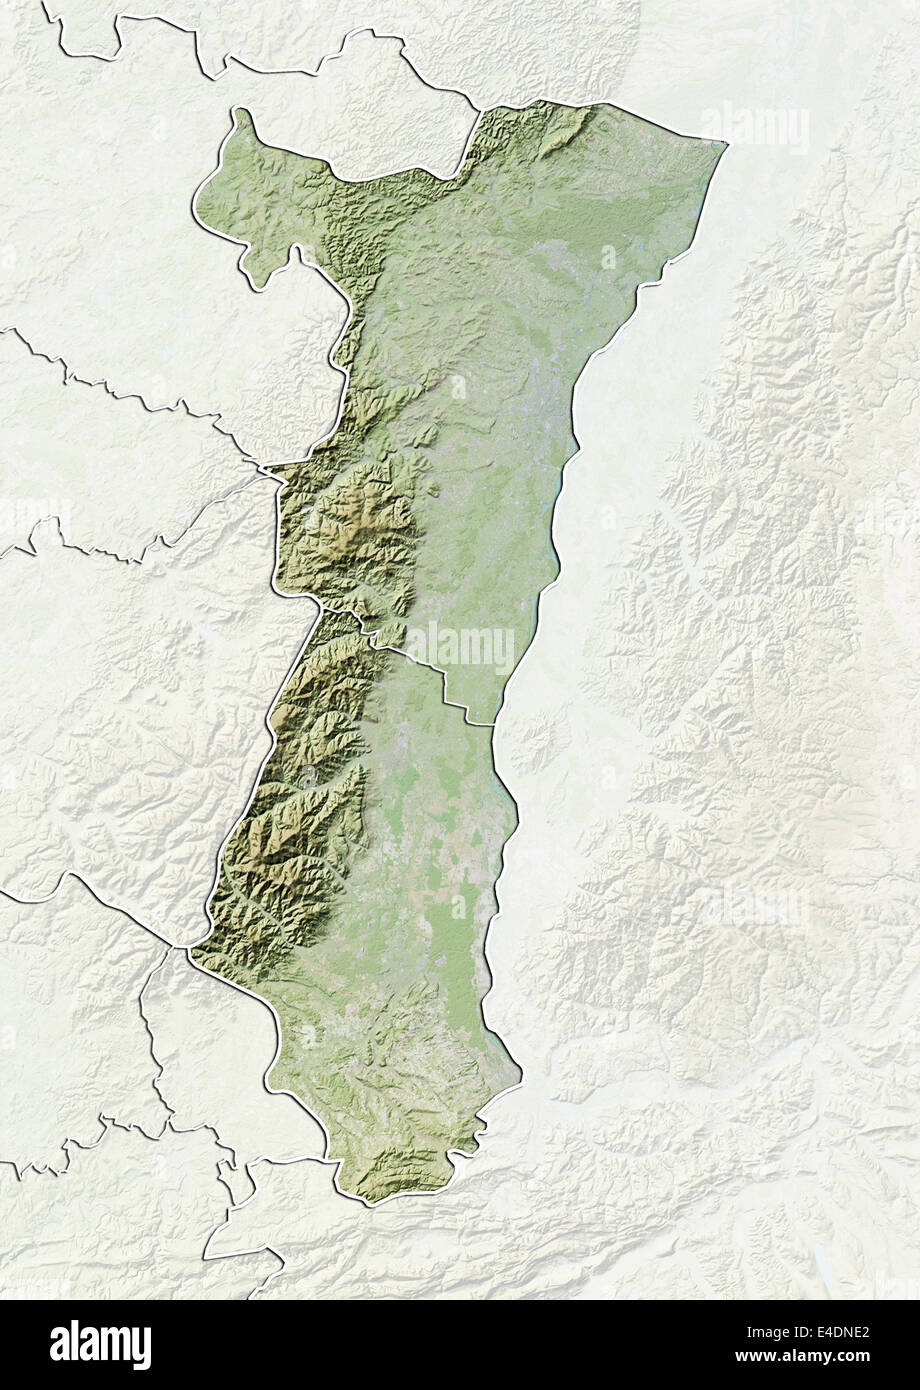 Region Of Alsace France Relief Map Stock Photo 71602330 Alamy